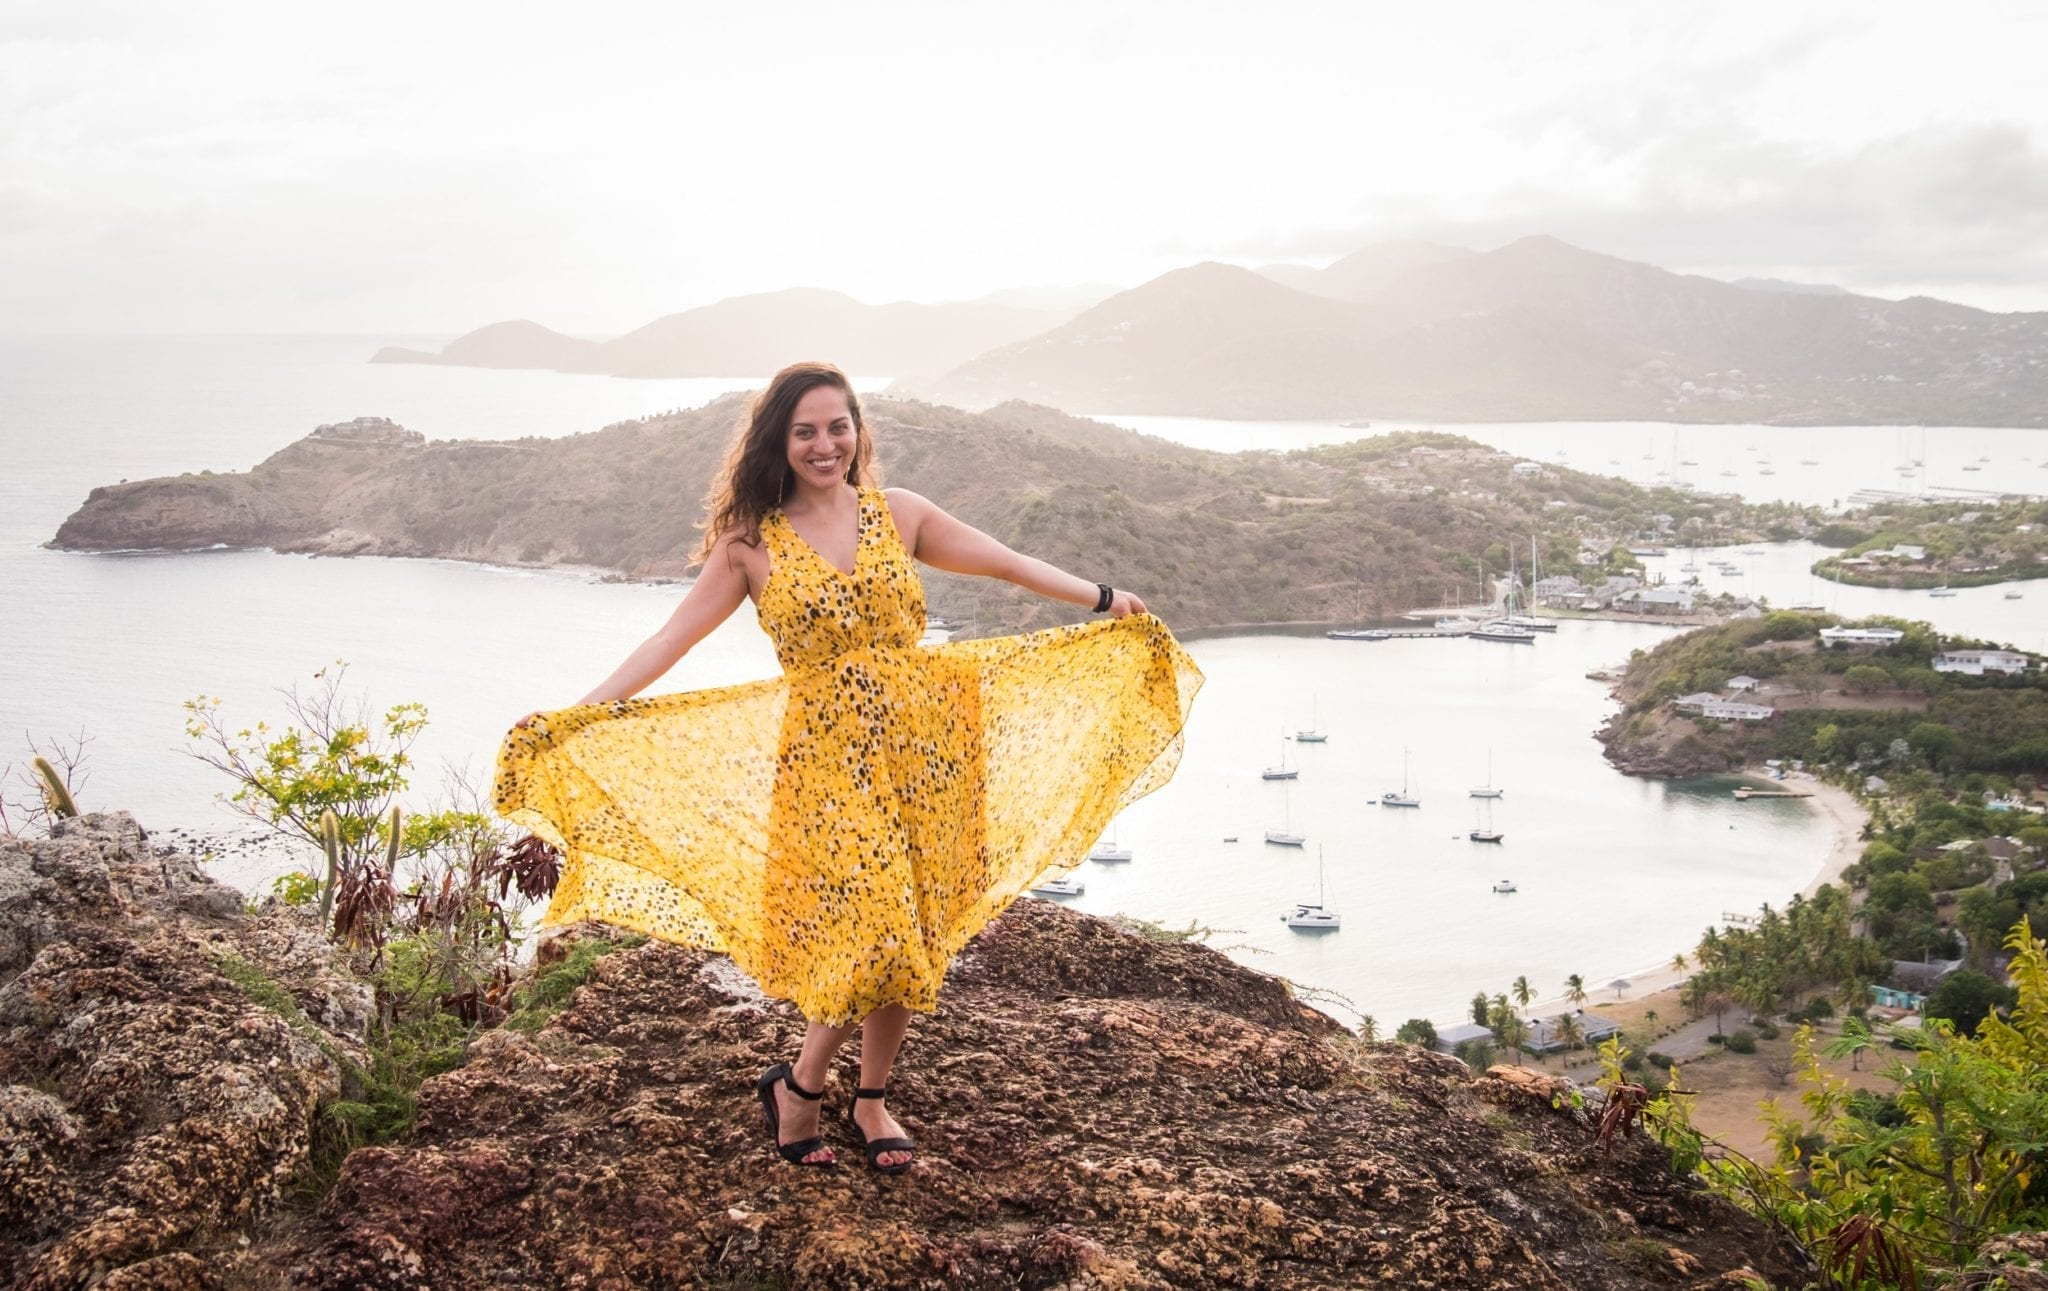 Kate wearing a long yellow and black-spotted gauzy gown over an overlook in Shirley Heights, Antigua. Kate is holding the gauzy outer layer open and smiling. In the background is a view over the White Sea down below, and mountains in the distance.